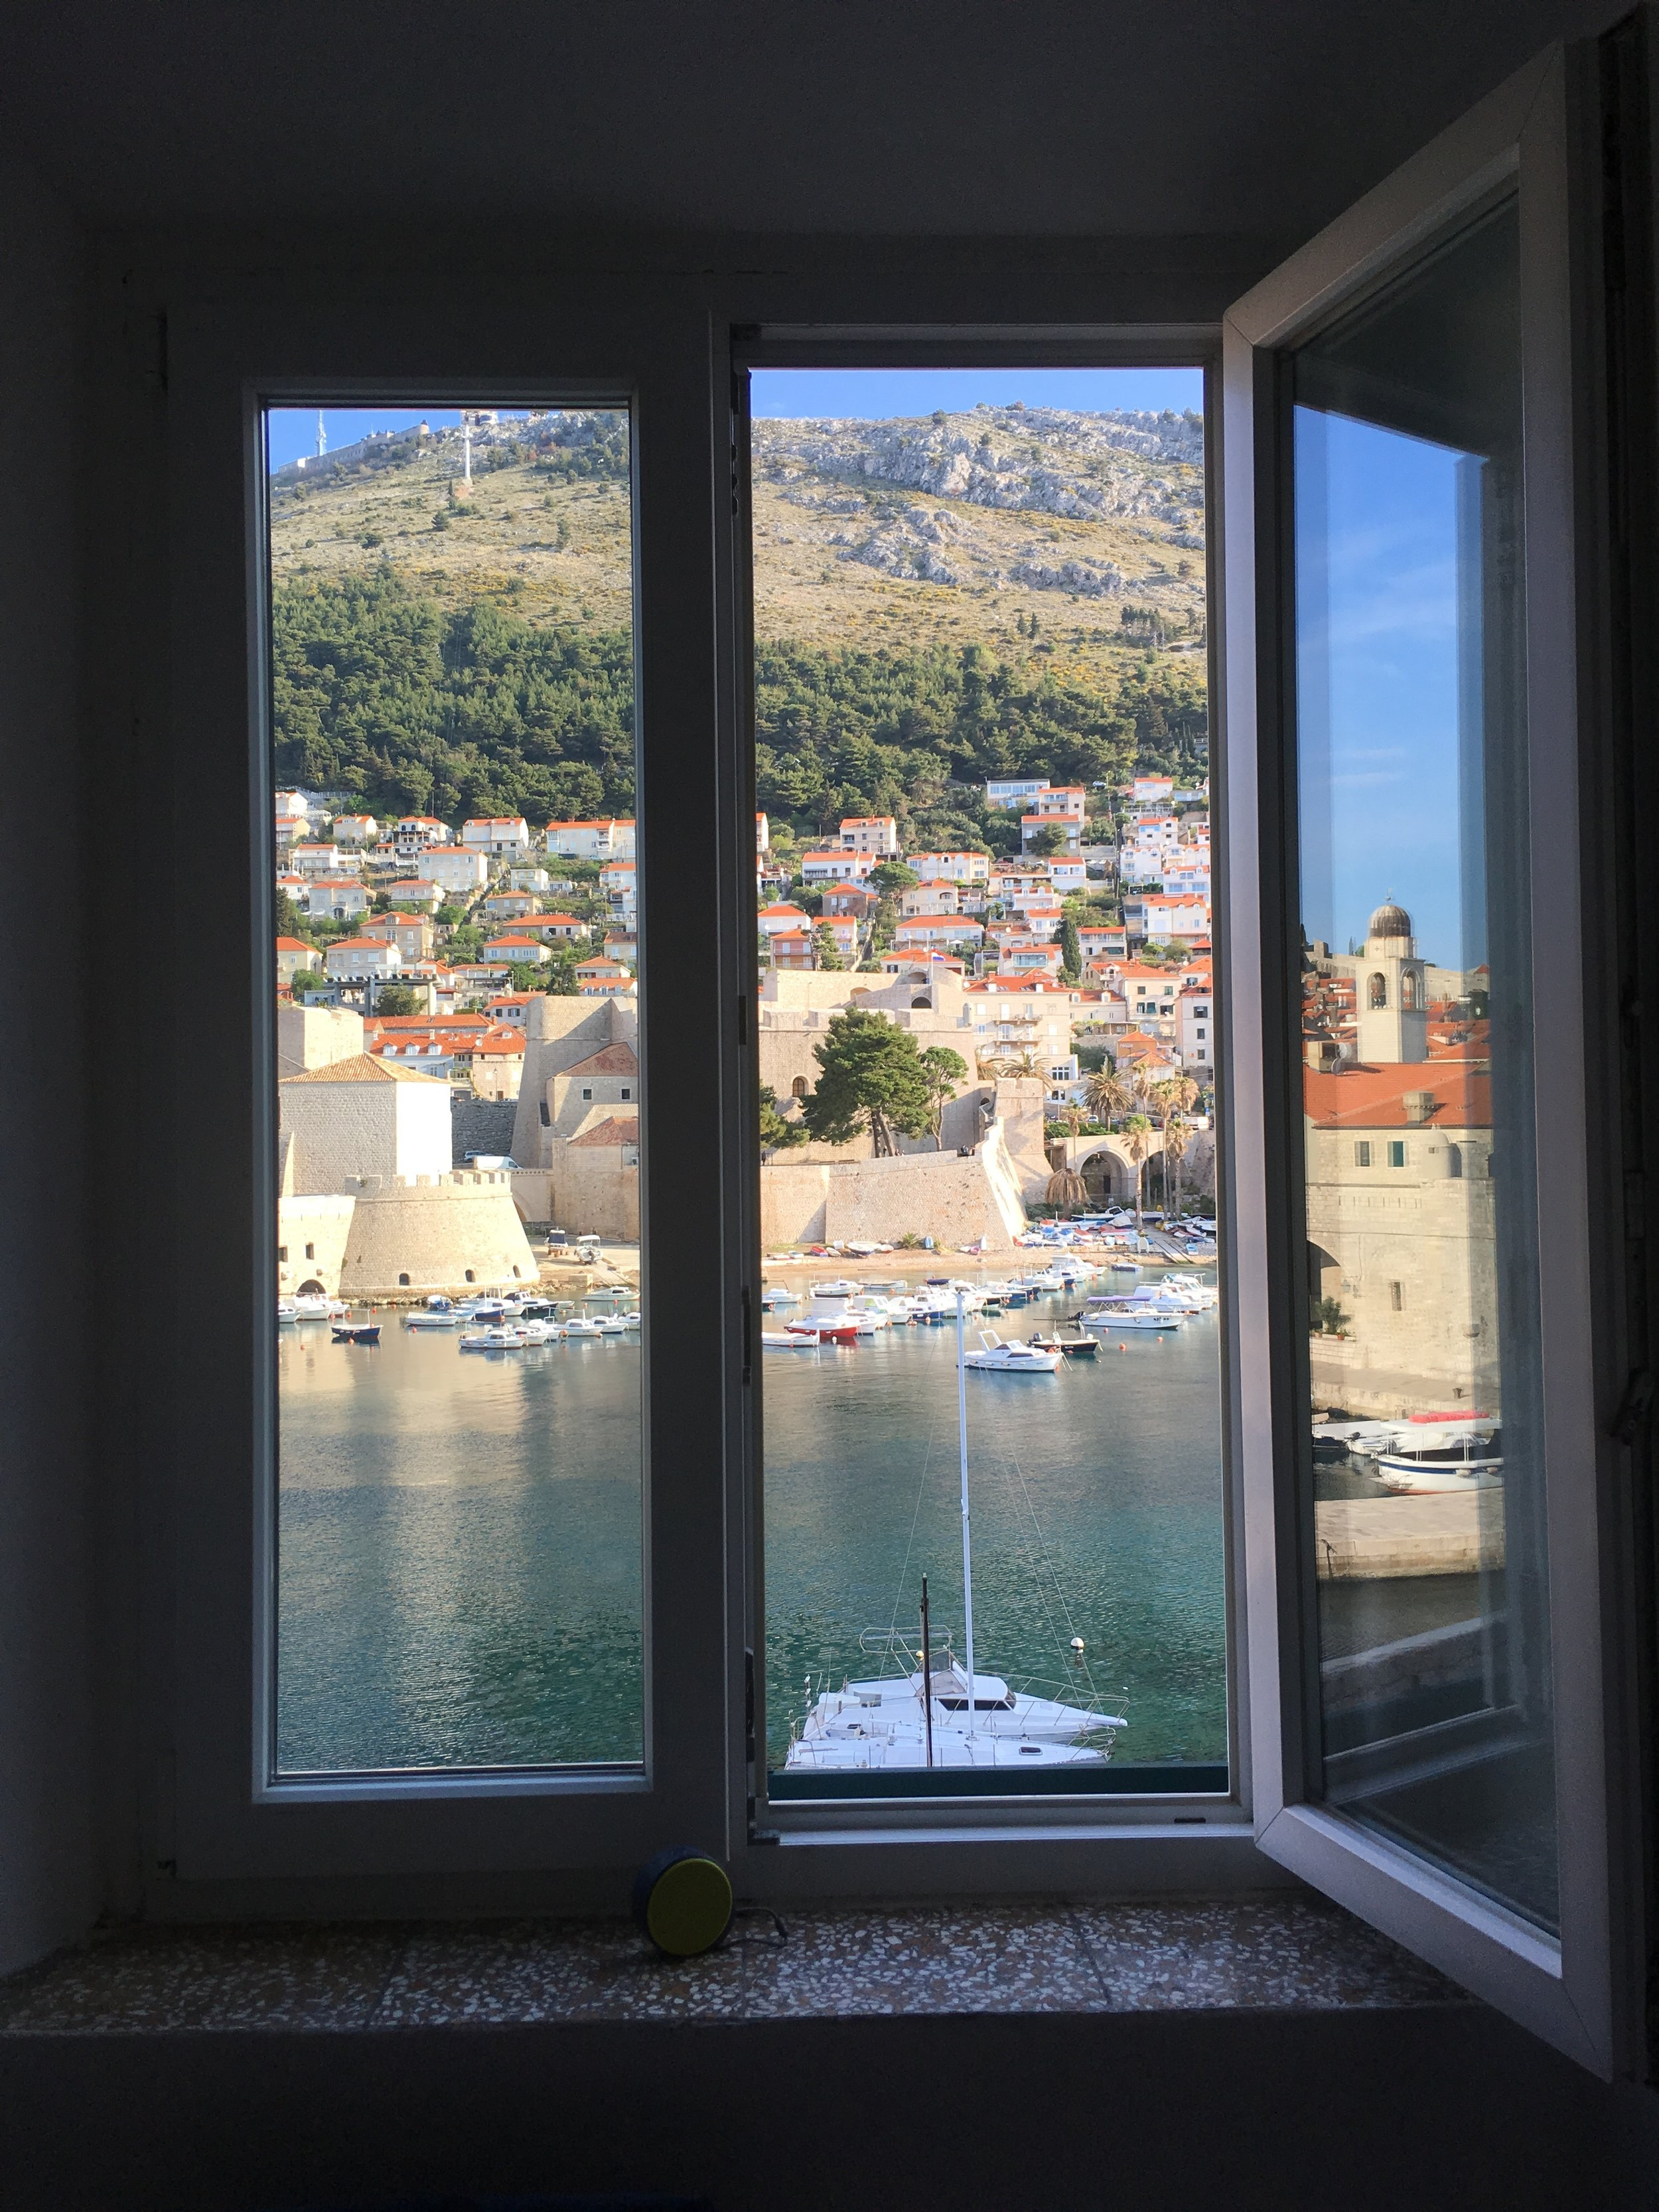 The views from Renata's apartments over the boat harbor